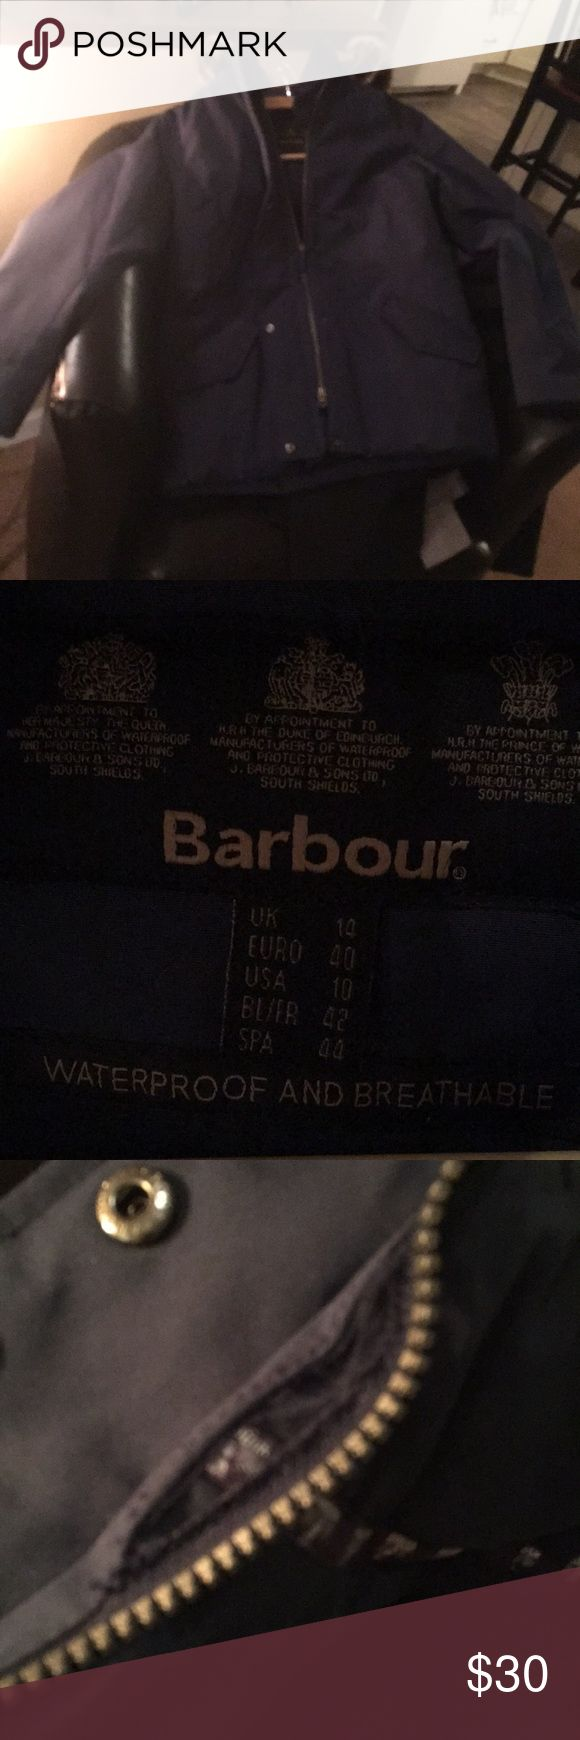 Barbour jacket Blue barbour parka. Zipper needs to be restitched by collar. Otherwise EUC. Price reflects Damage. Barbour Jackets & Coats Puffers